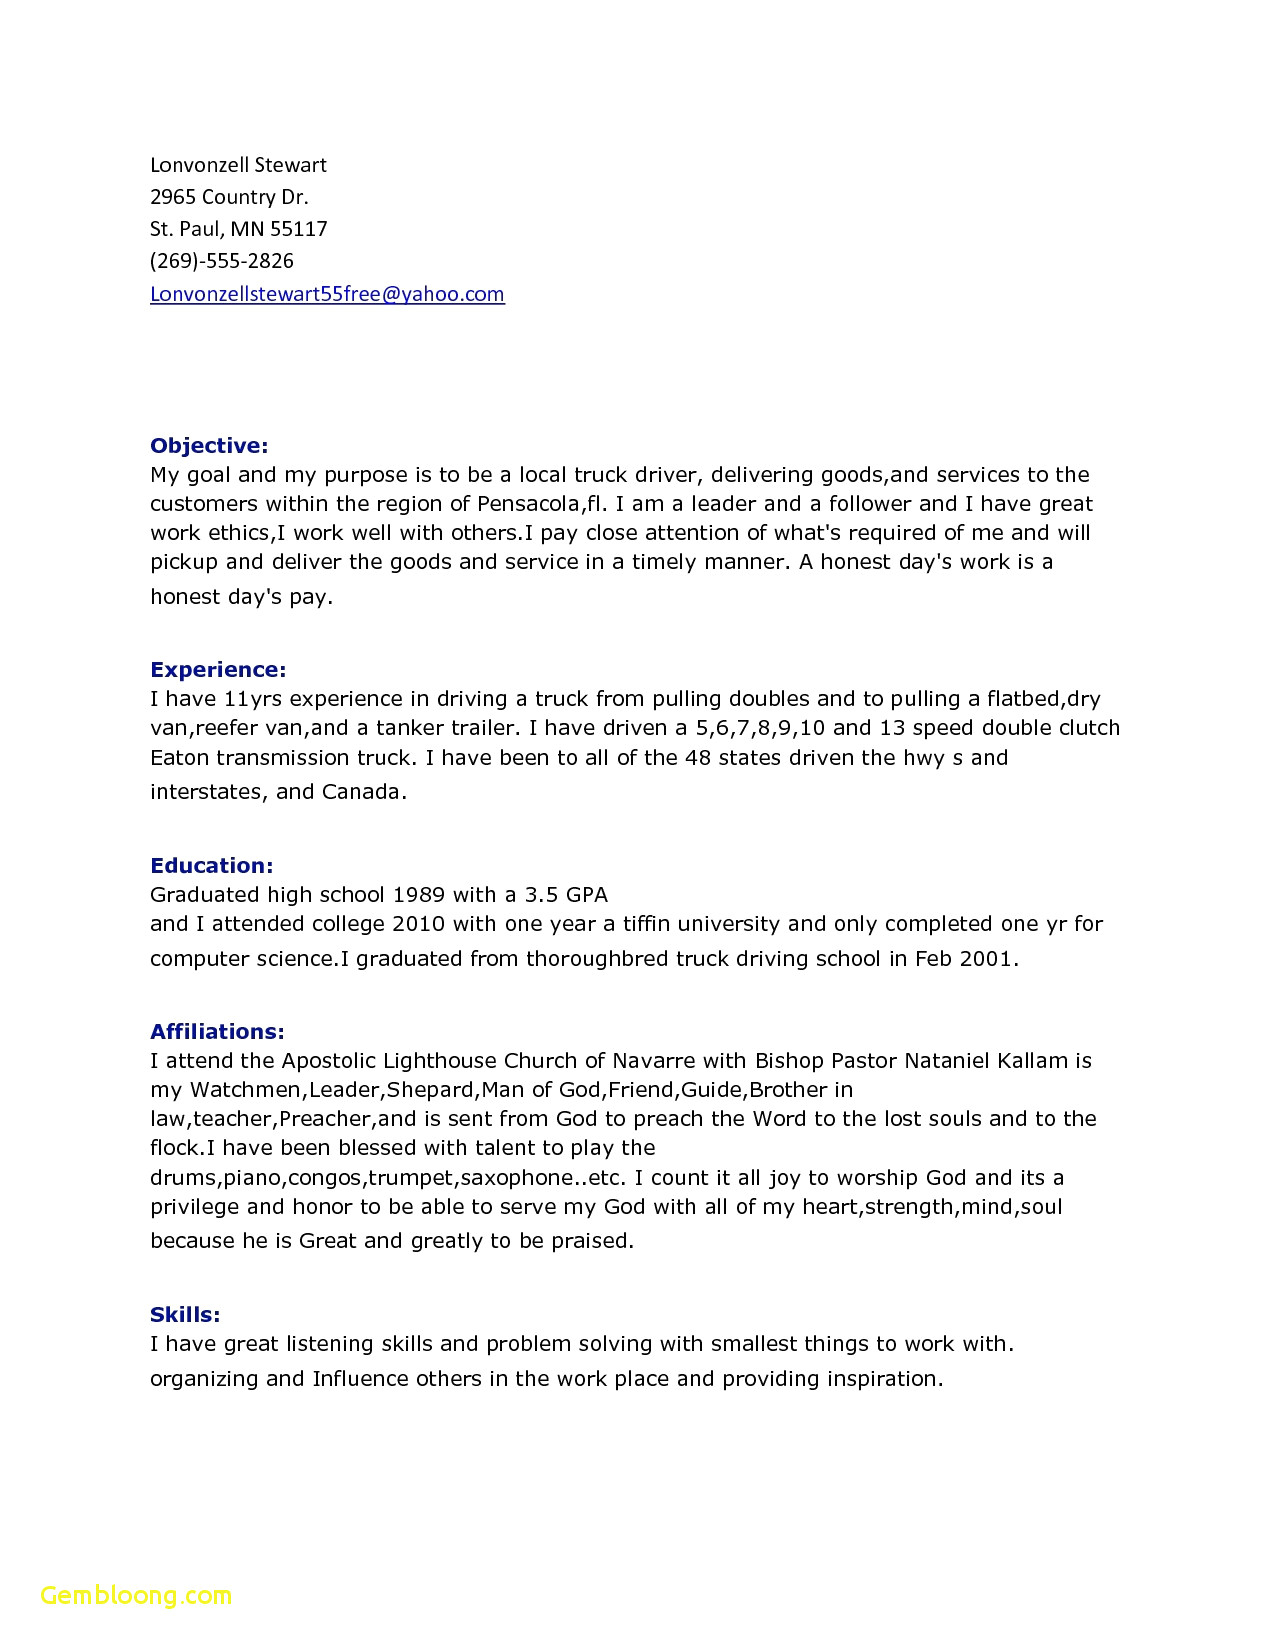 Delivery Driver Resume - 61 Awesome Truck Driver Resume